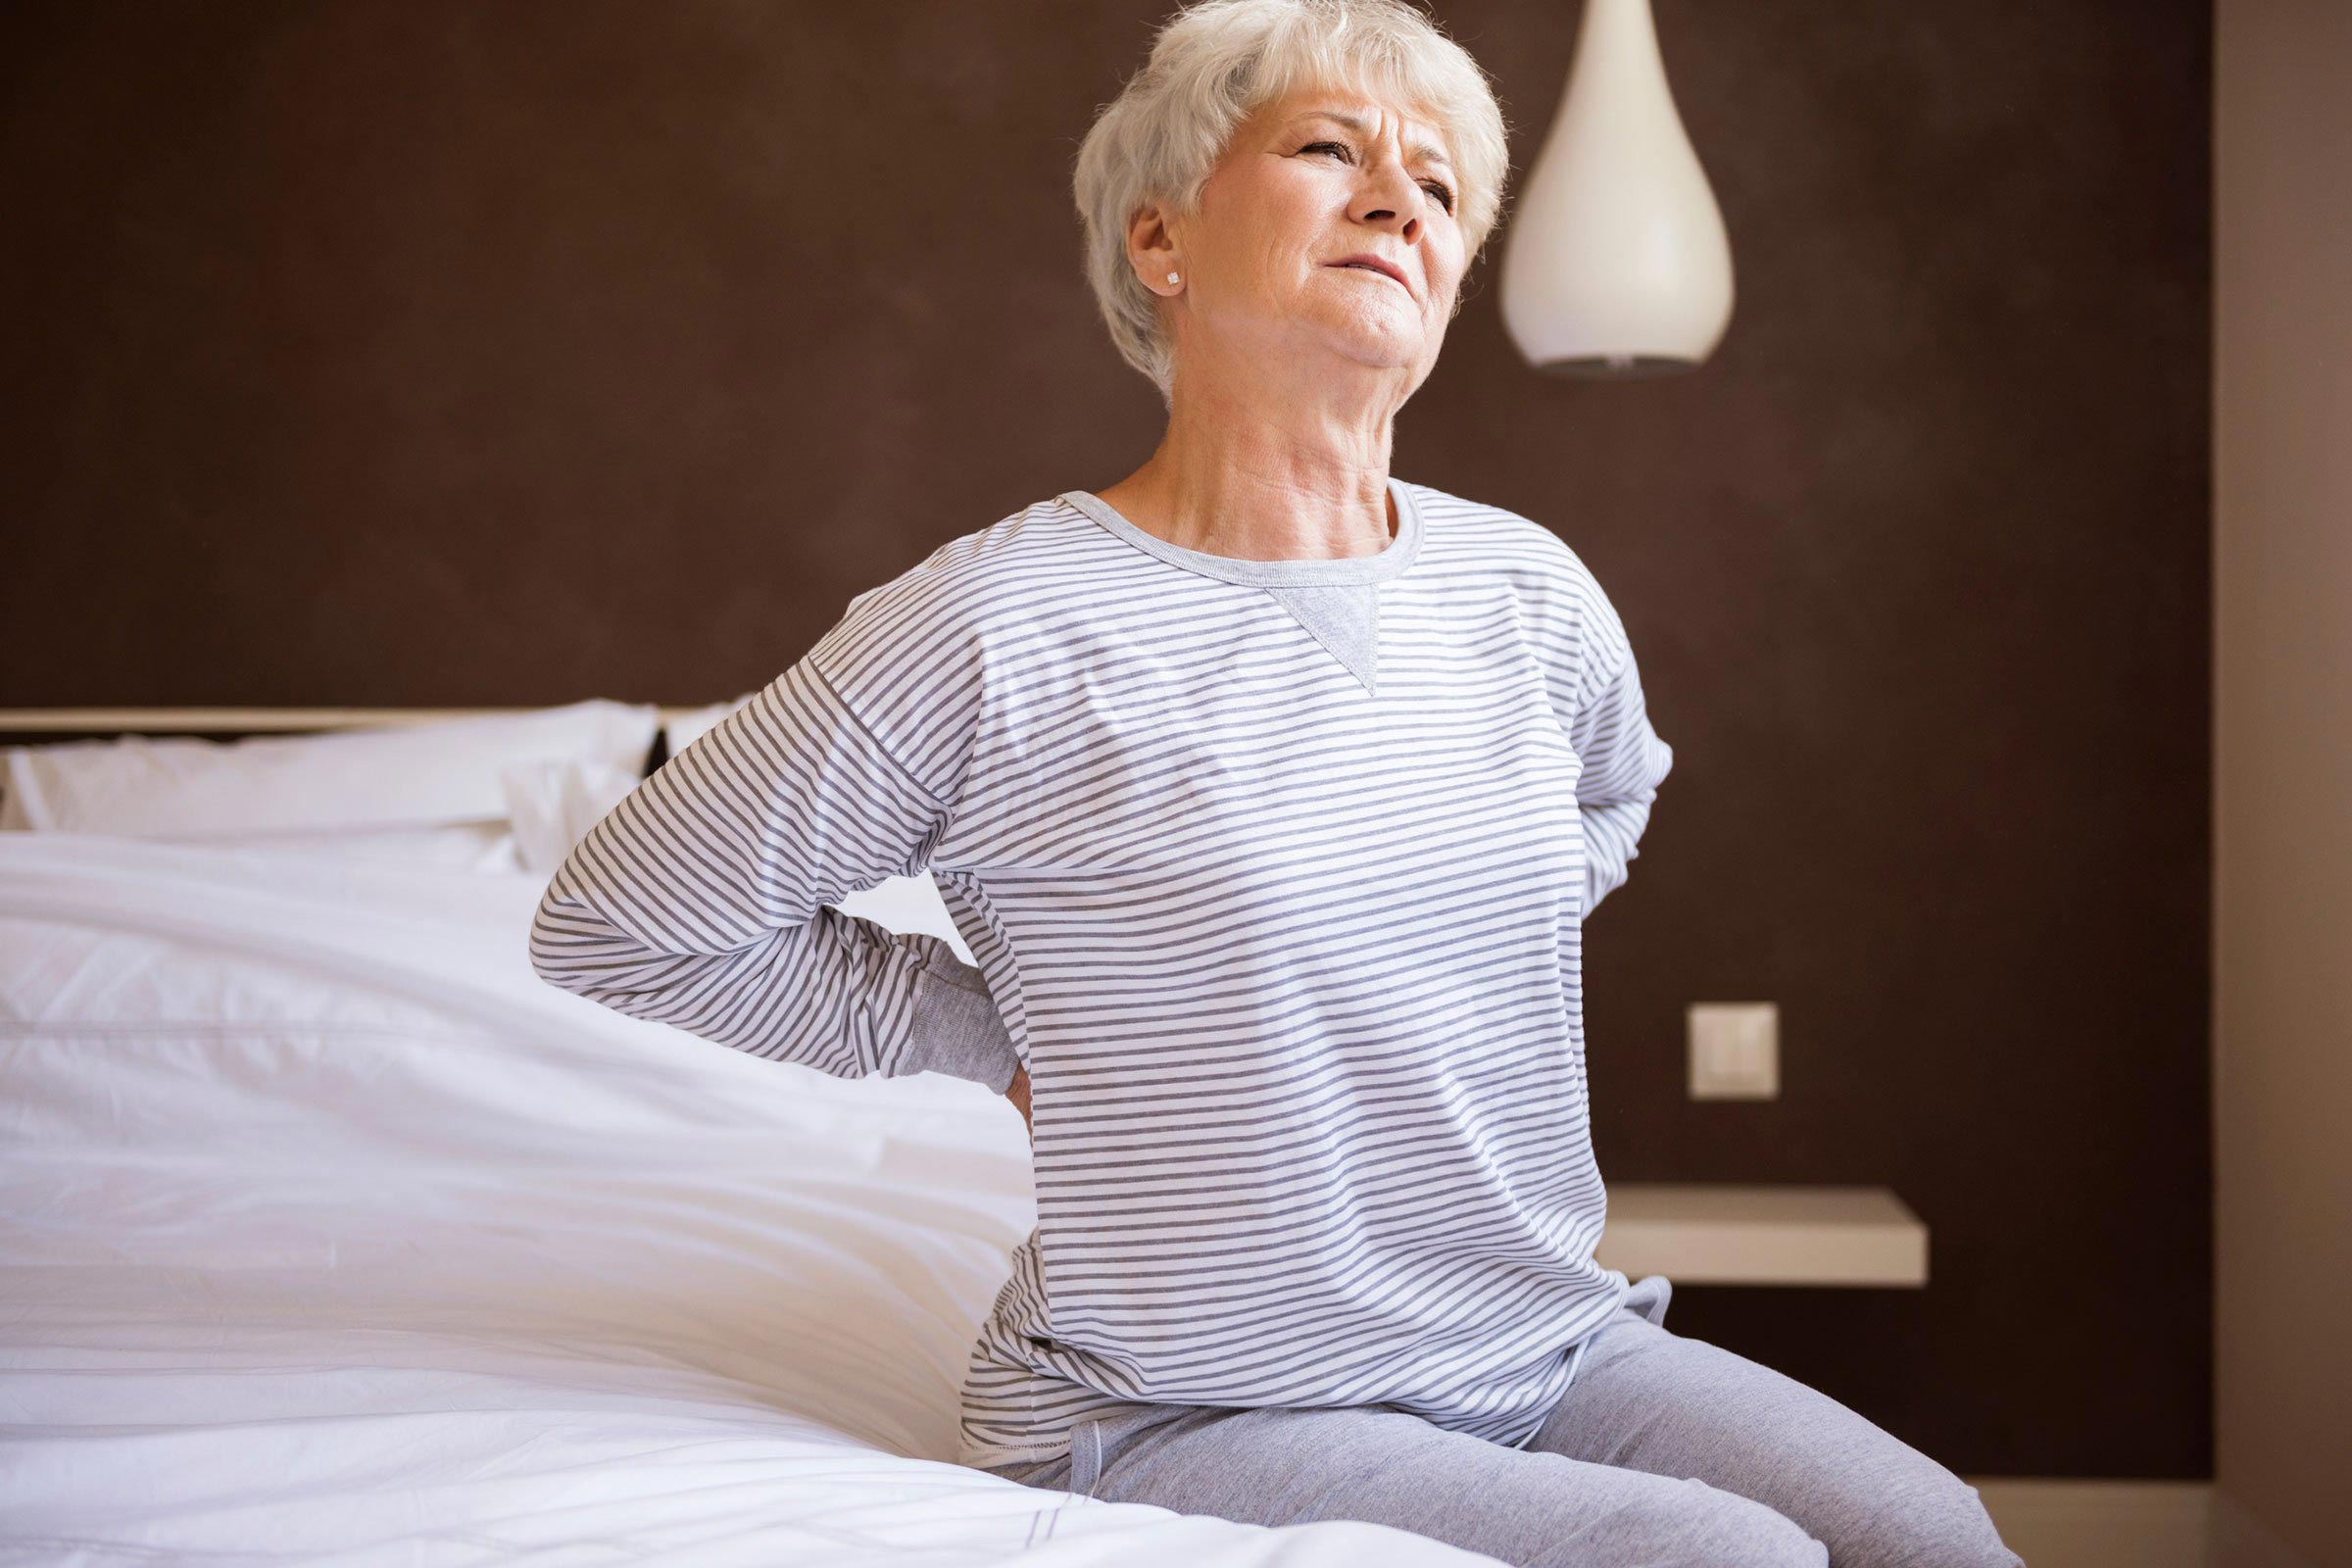 My Back Hurts After Sleeping! What Can I Do About It?